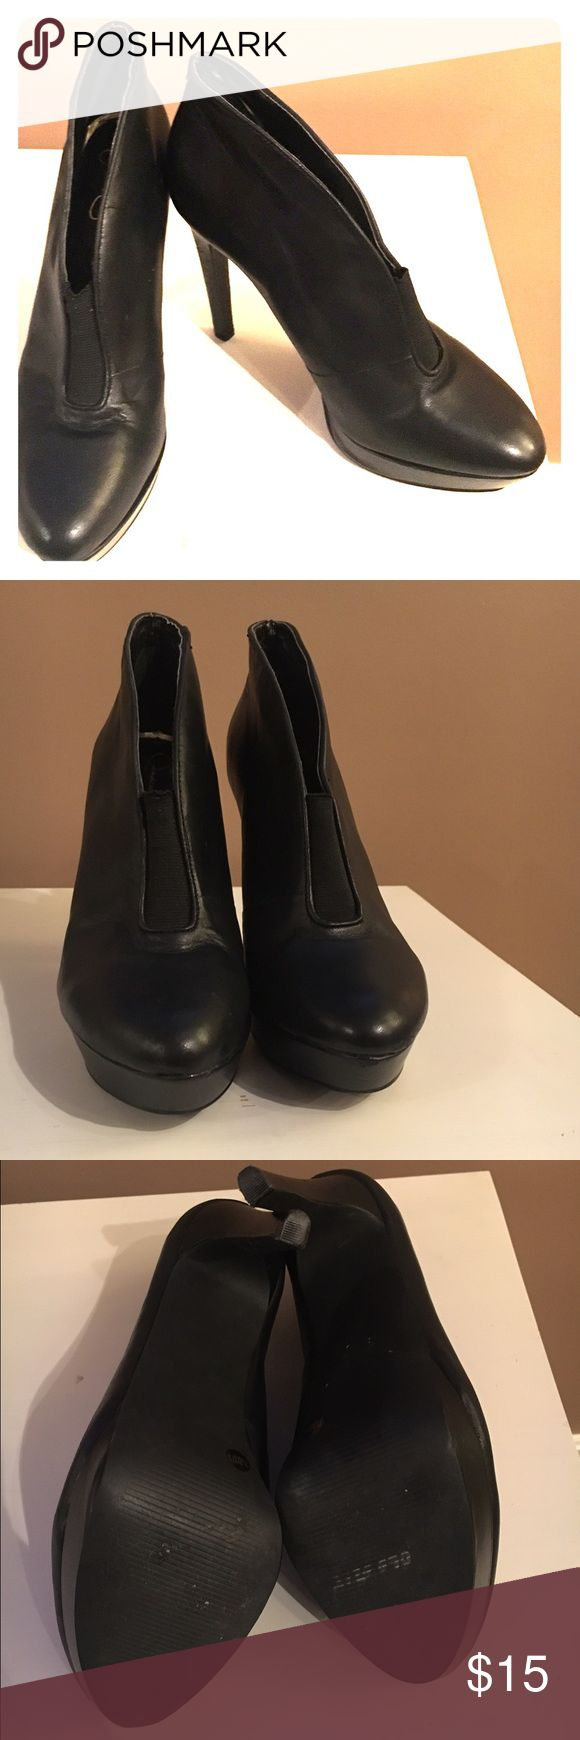 Jessica Simpson bootie black pumps Fabulous Jessica Simpson 7.5 black platform bootie heels. Like new! Little too tall for me and making room in my closest! Feel free to make an offer!! Jessica Simpson Shoes Ankle Boots & Booties